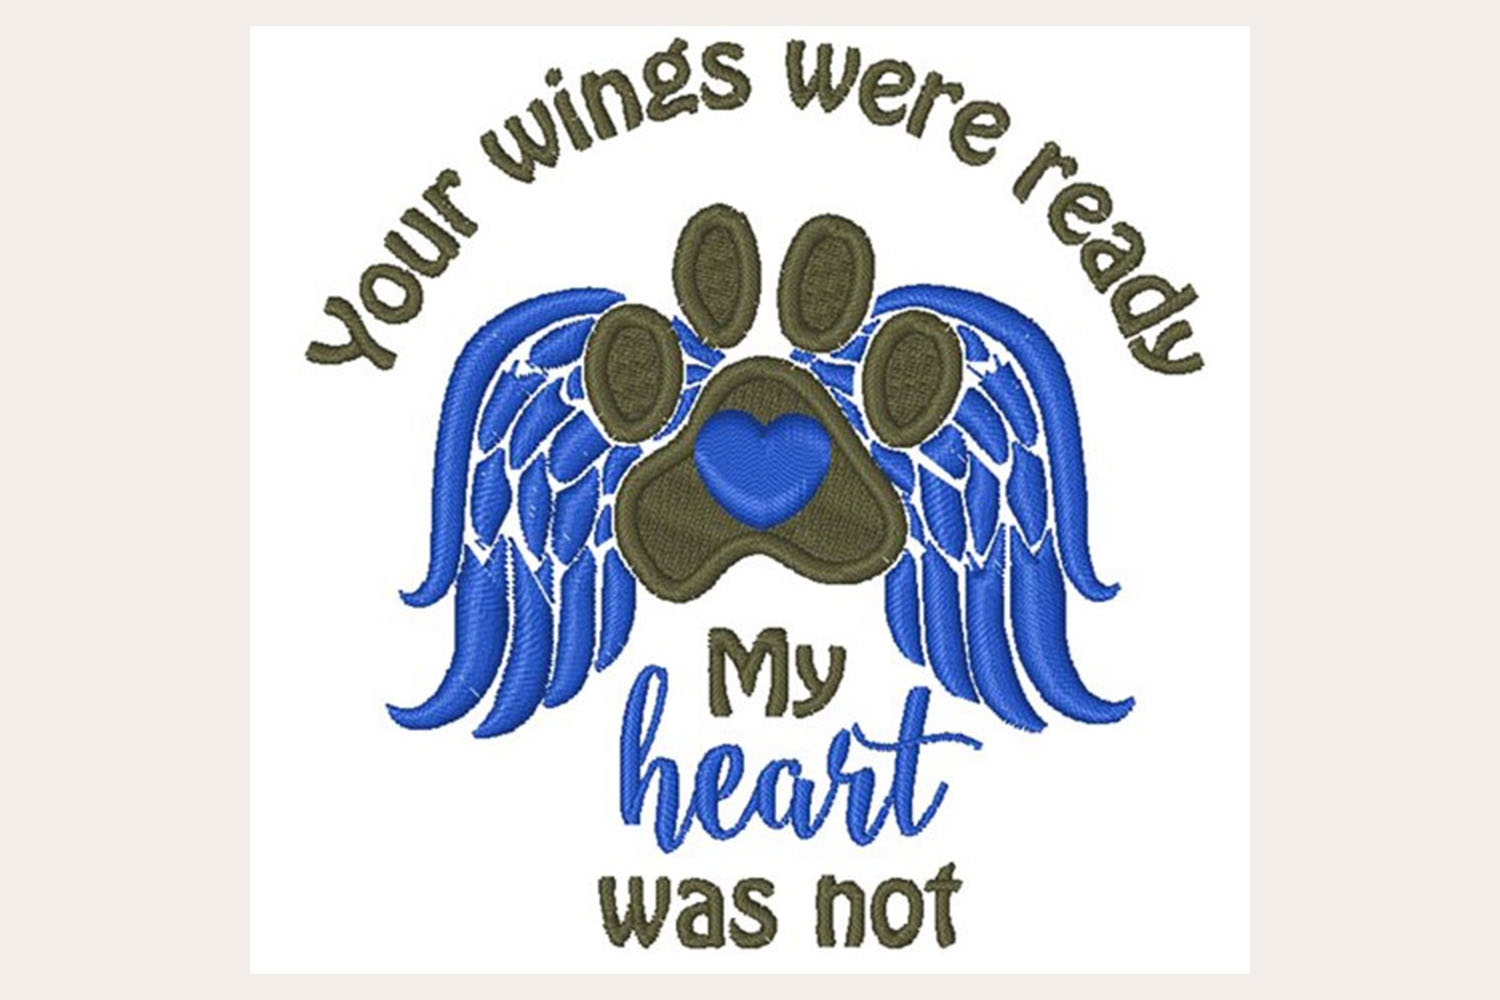 Wings Were Ready -Machine Embroidery Design example image 1